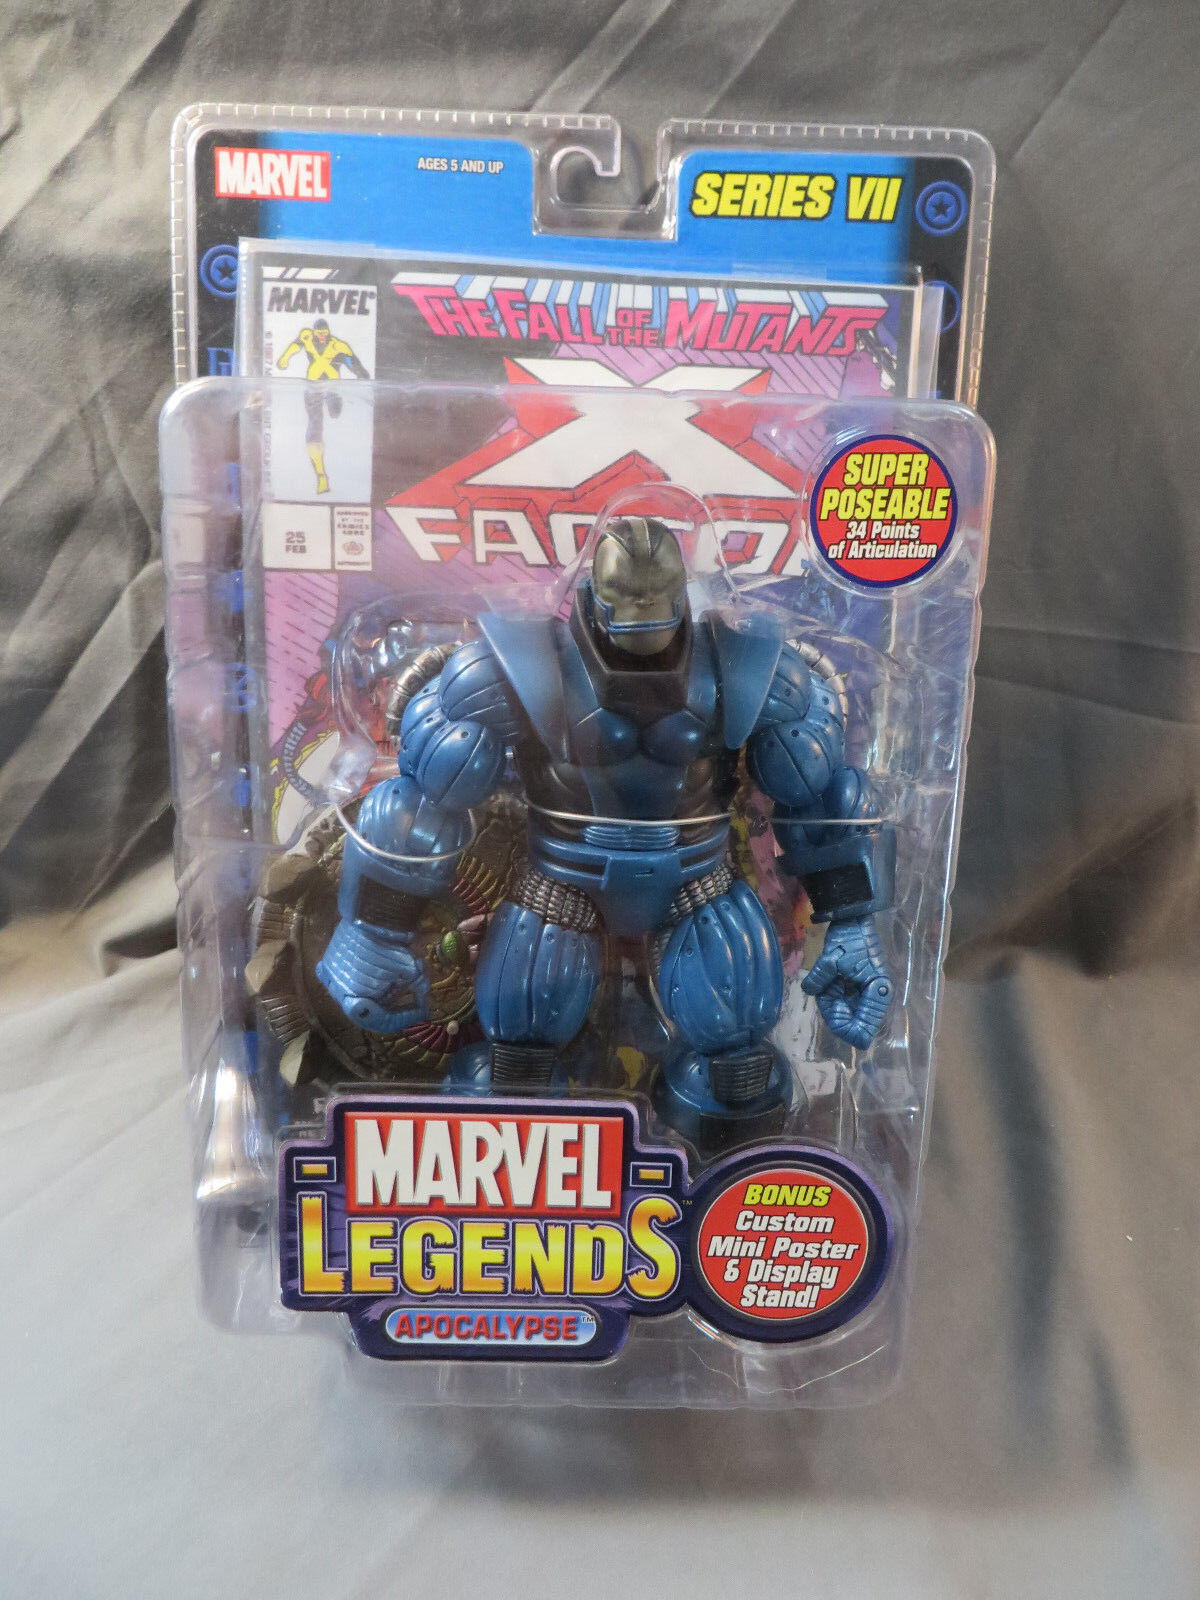 Toybiz Marvel Legends Series VII Apocalipsis Moc Vengadores 2004